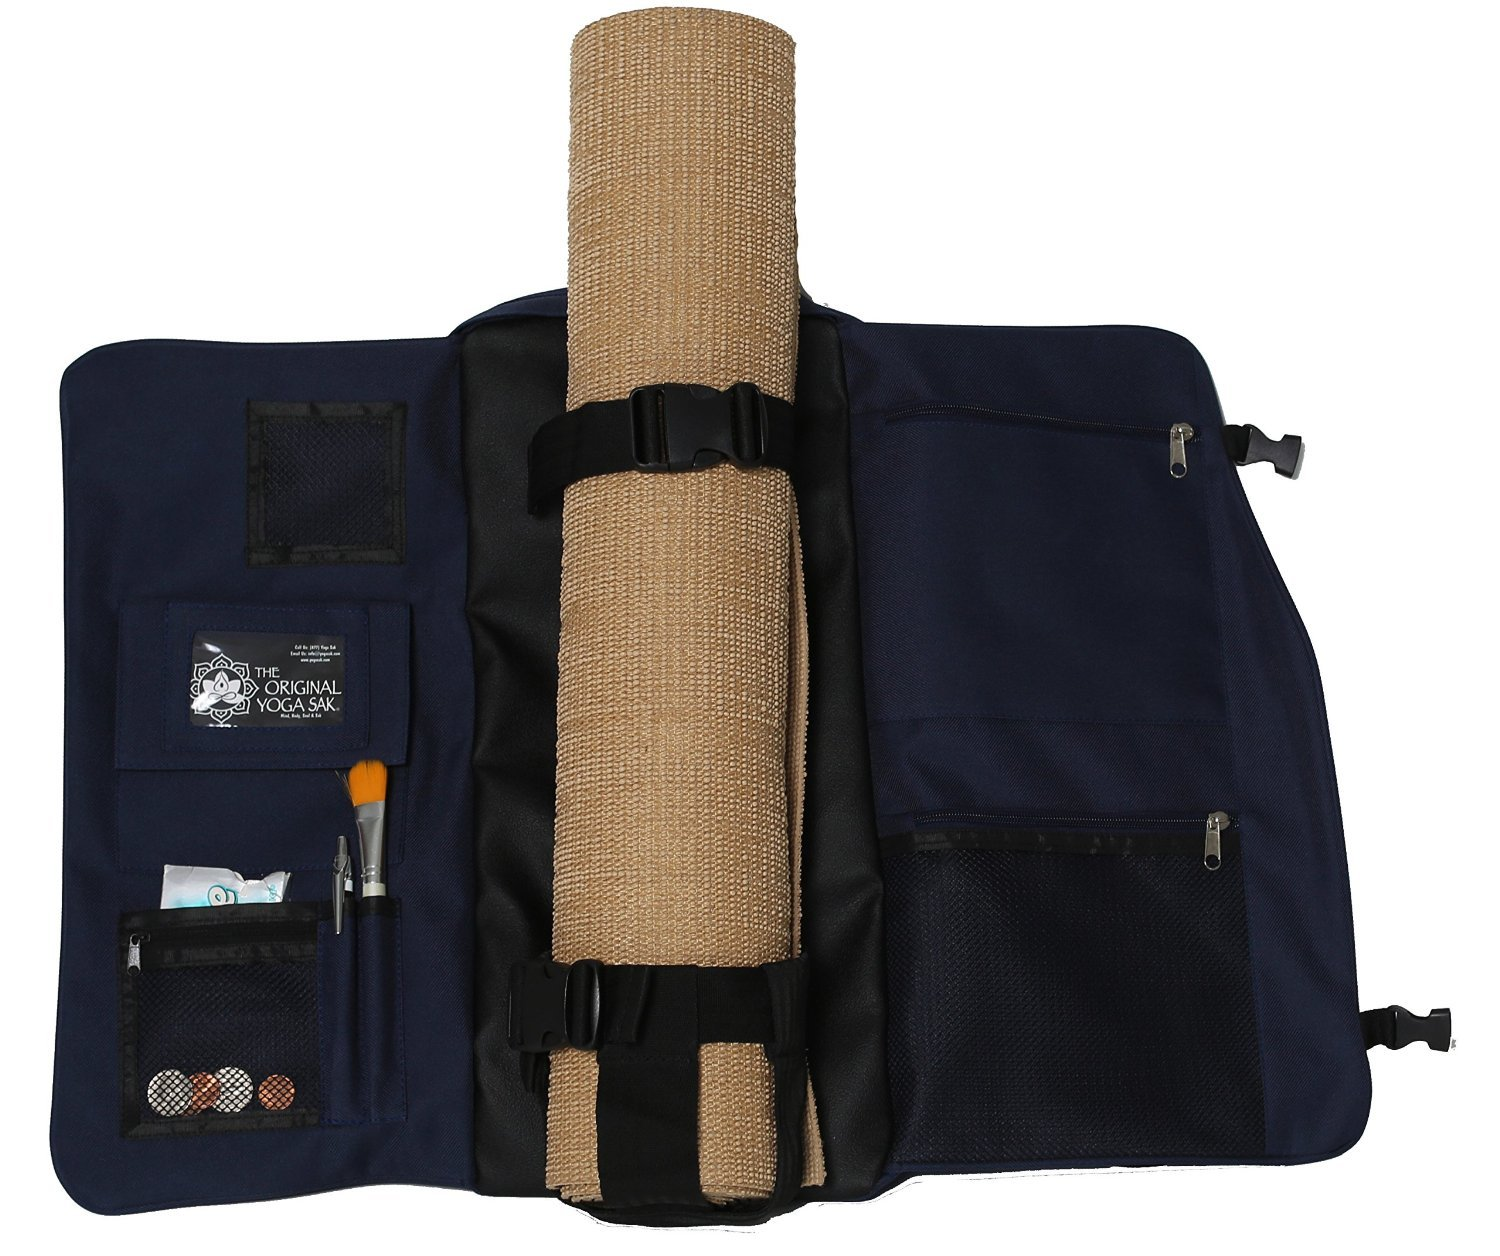 Yoga Sak - The Ultimate Sports / Multi Purpose Backpack - Great for Yoga, Hiking, Biking, School, and more - Navy